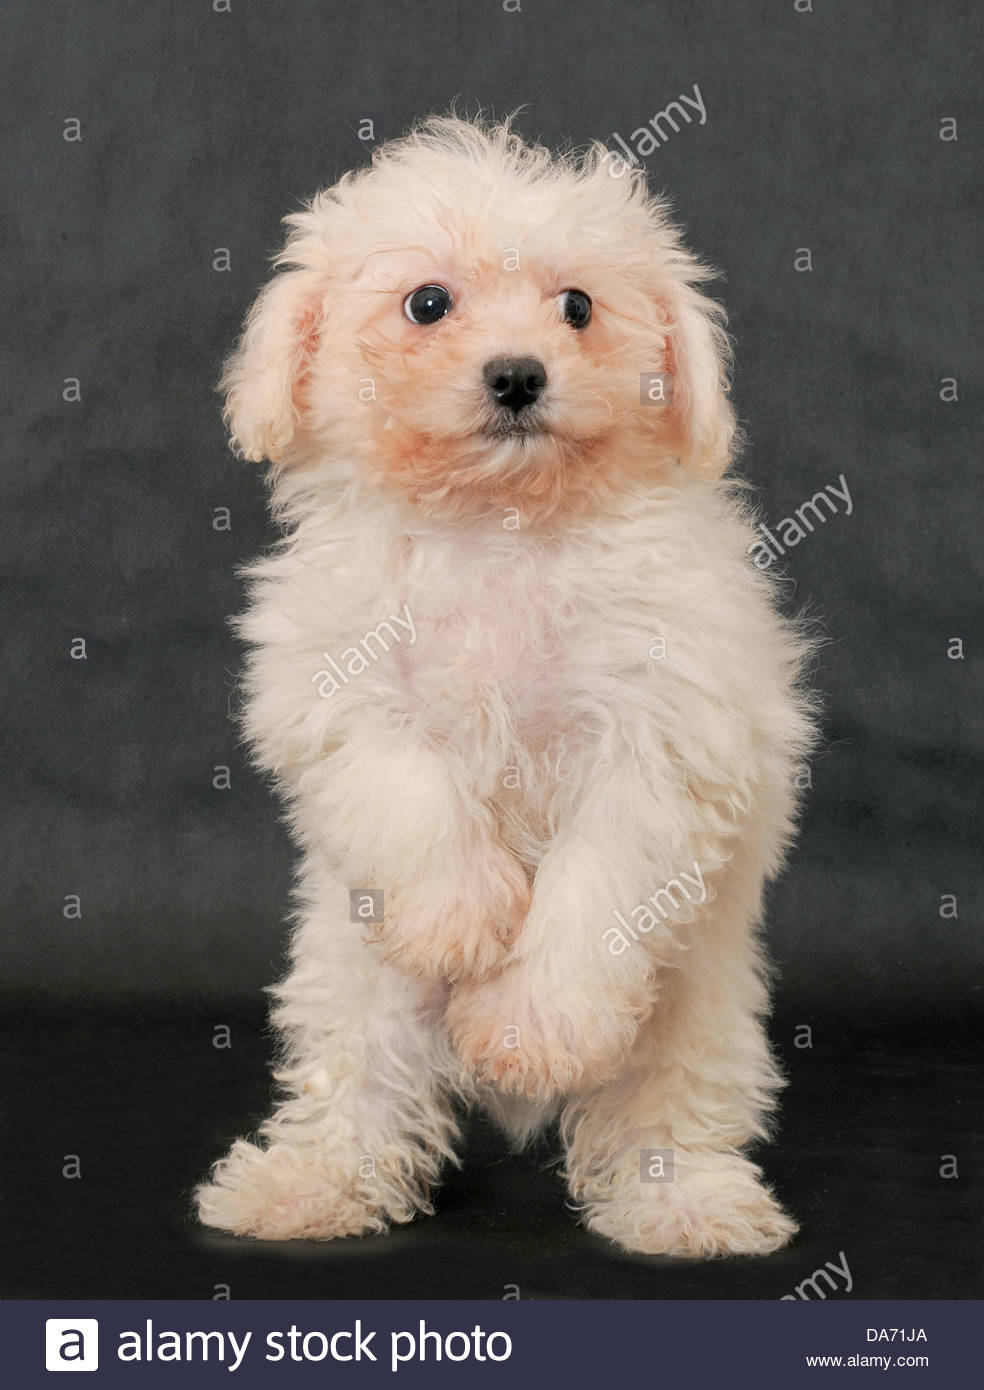 Bolognese Dogs Stock Photos Bolognese Dogs Stock Images Alamy